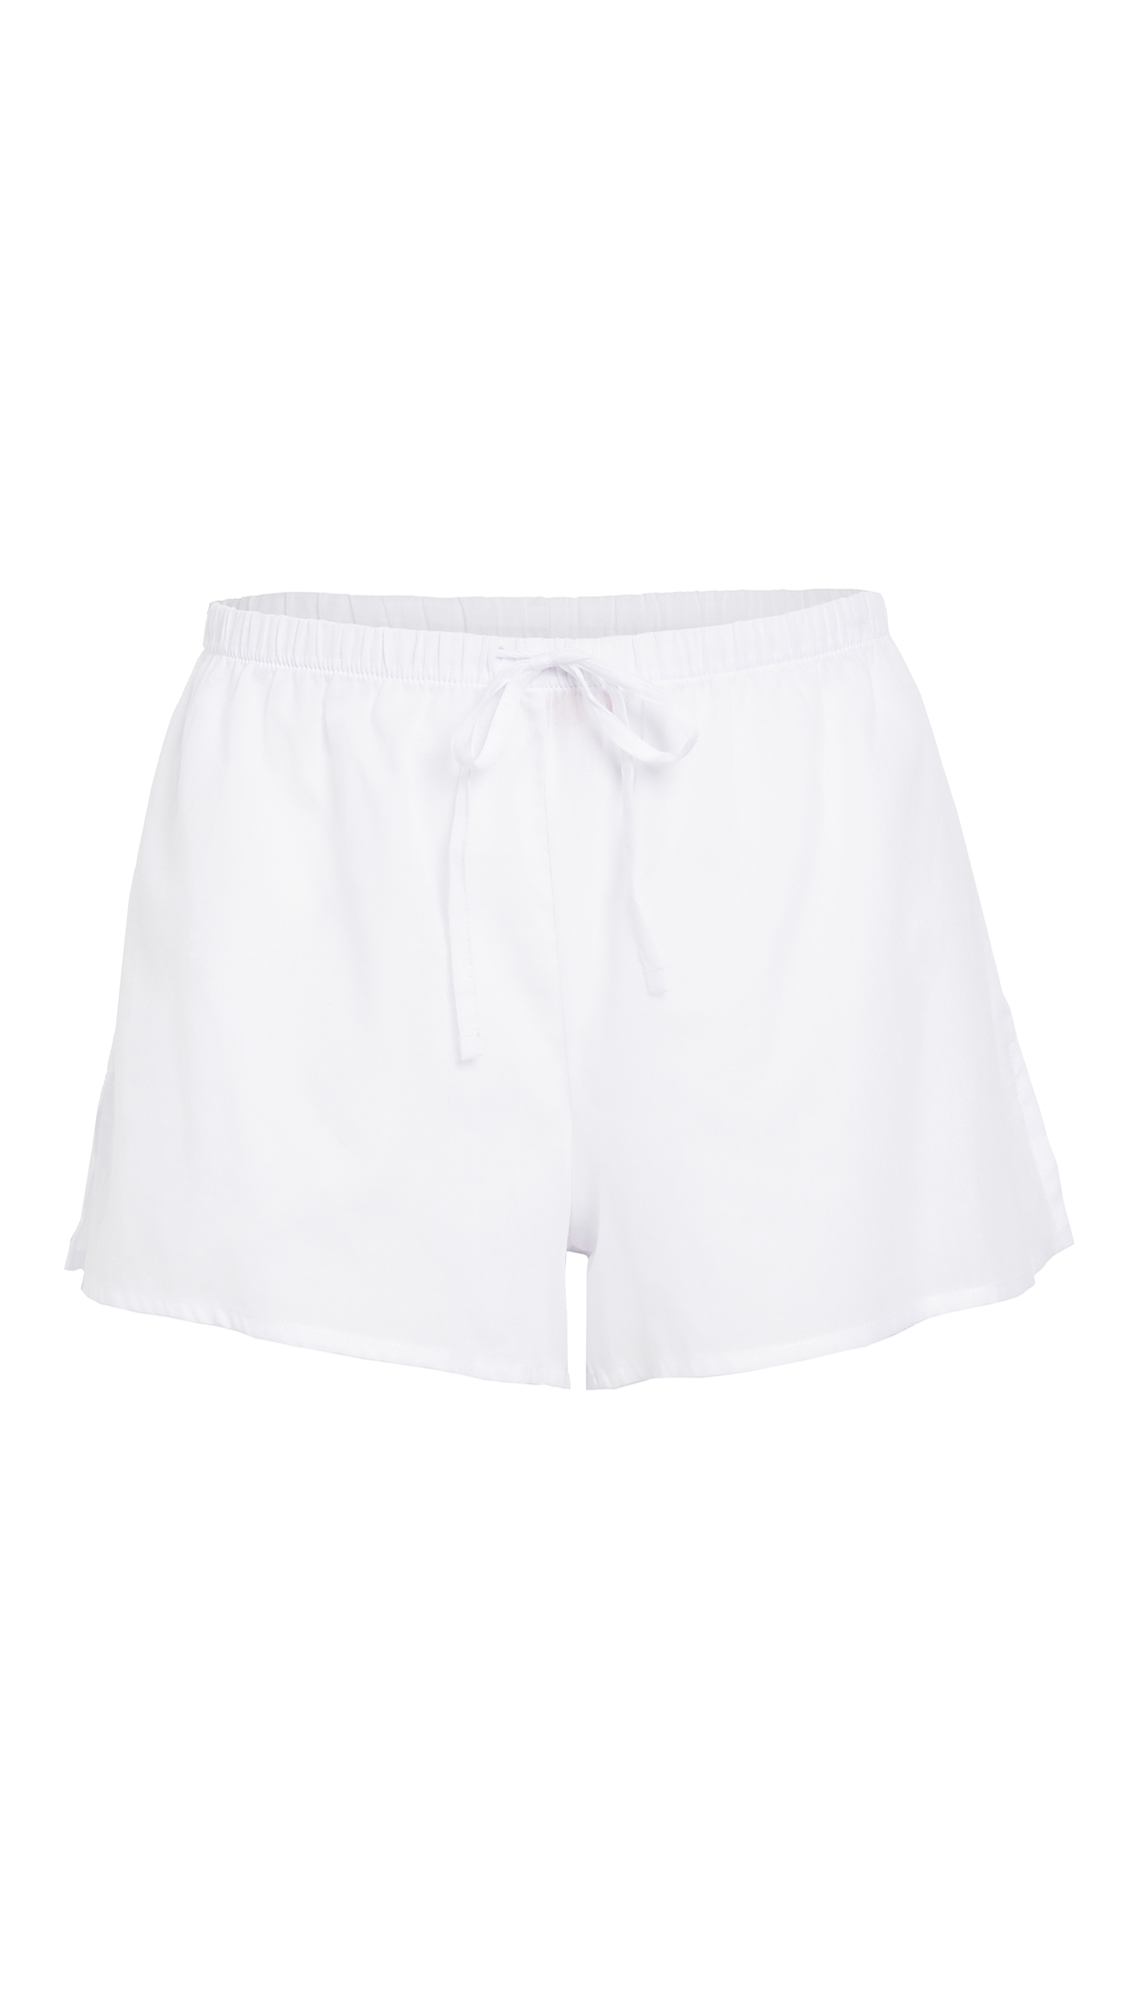 Skarlett Blue Innocent Cotton Lounge Shorts